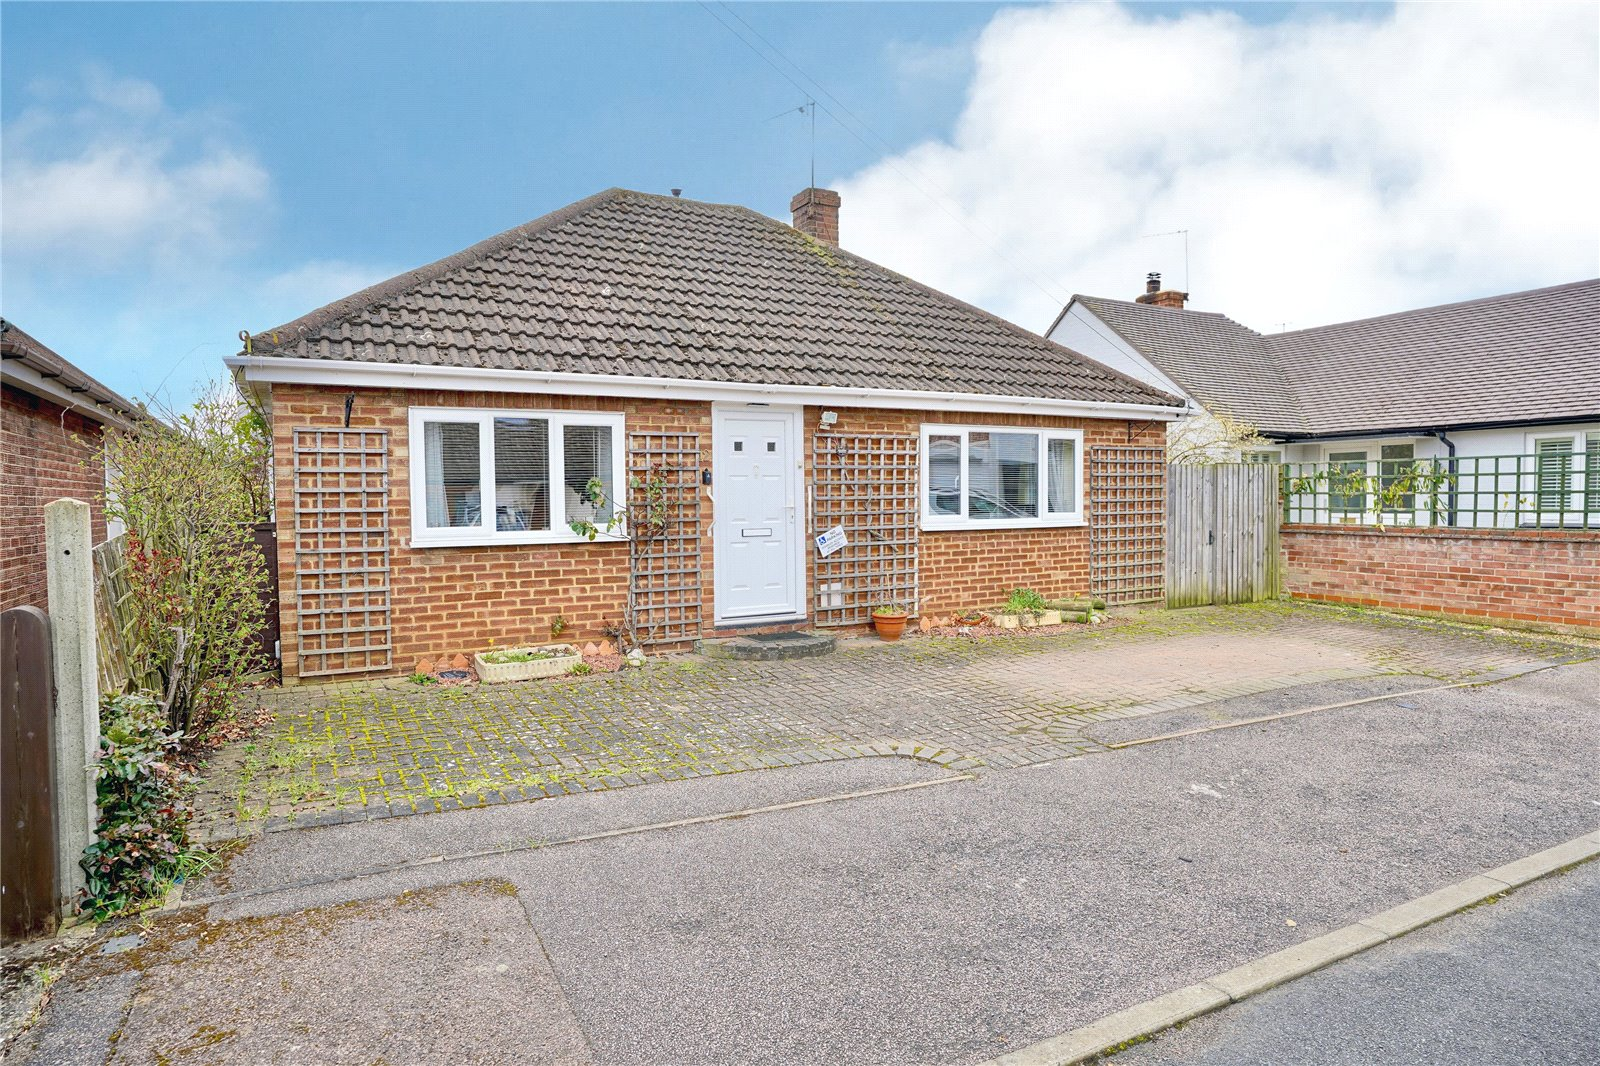 2 bed house for sale in St Neots, PE19 1EB, PE19